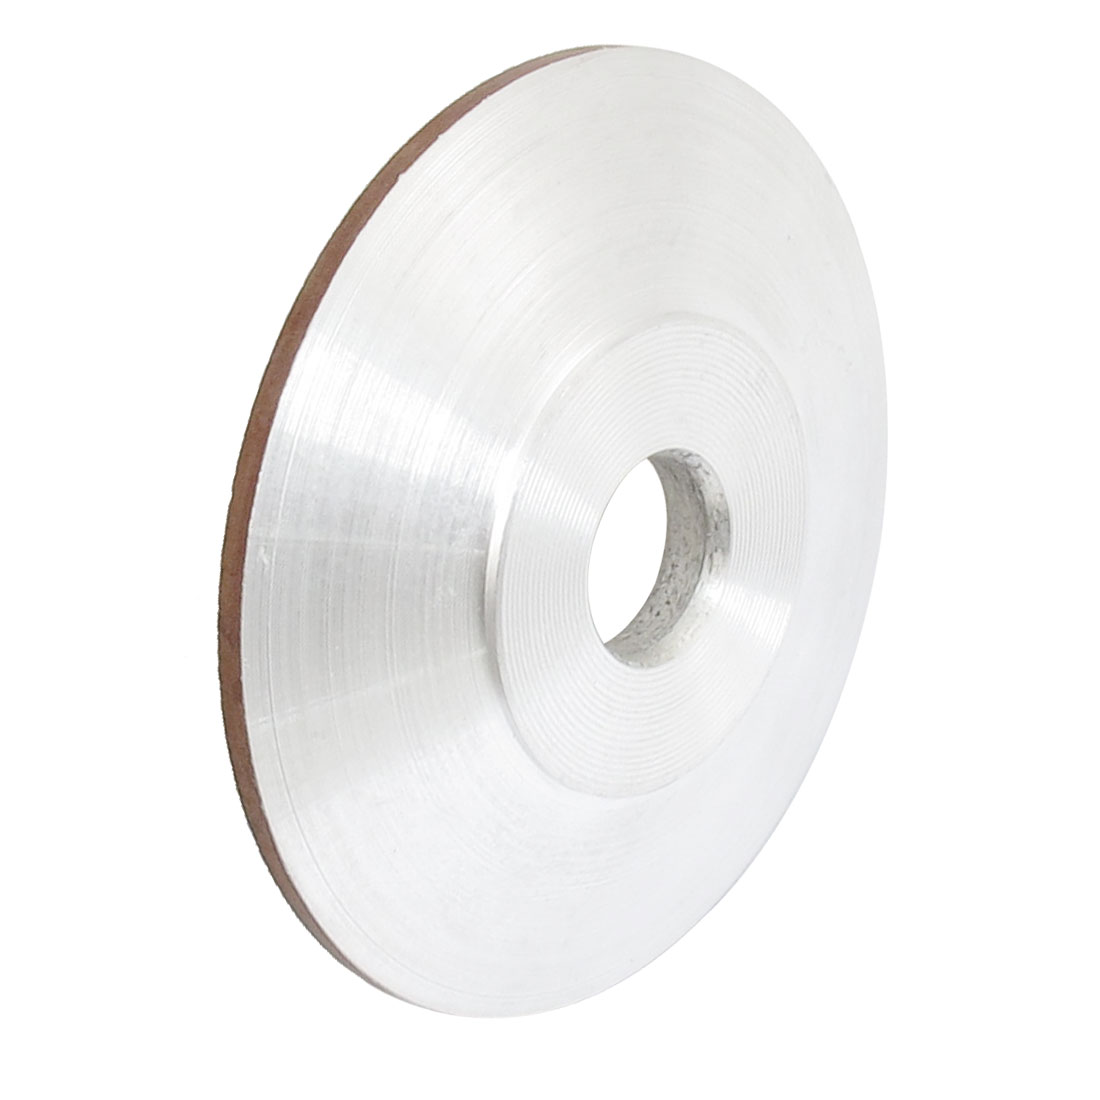 80mm x 16mm x 8mm x 8mm Resin Metal Cutting Diamond Grinding Wheel